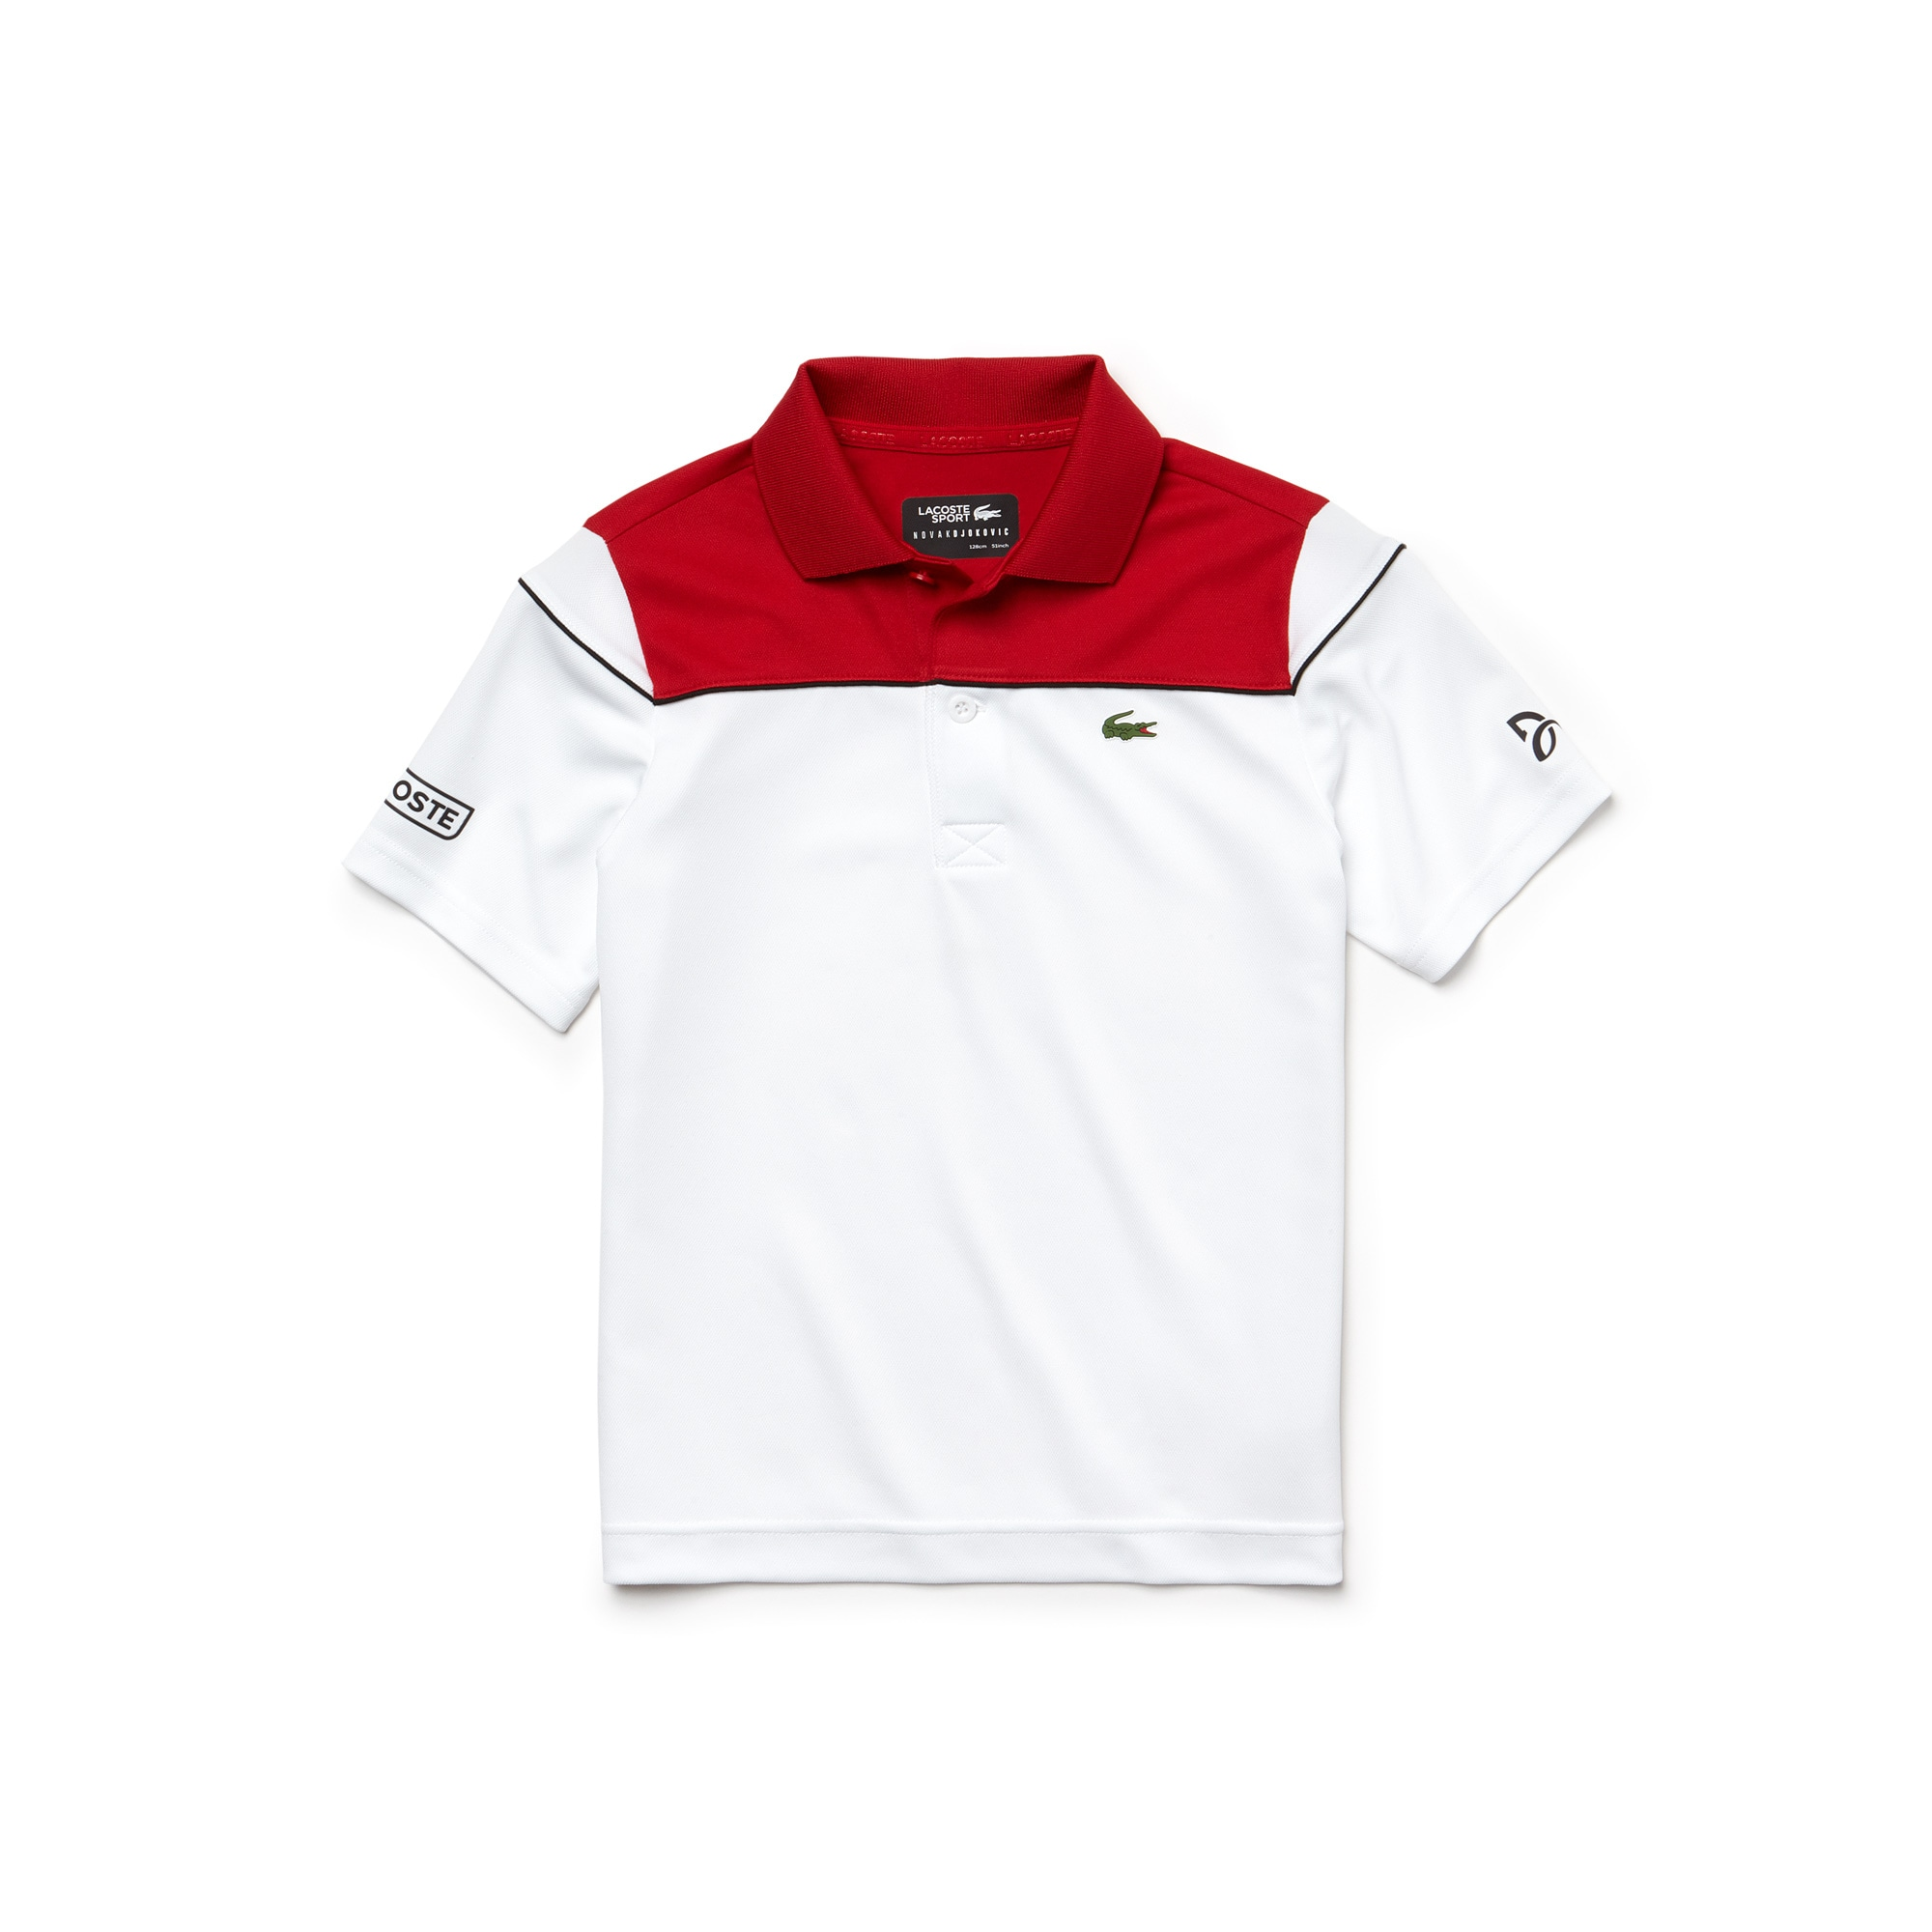 Boys' LACOSTE SPORT NOVAK DJOKOVIC COLLECTION Colorblock Technical Piqué Polo Shirt